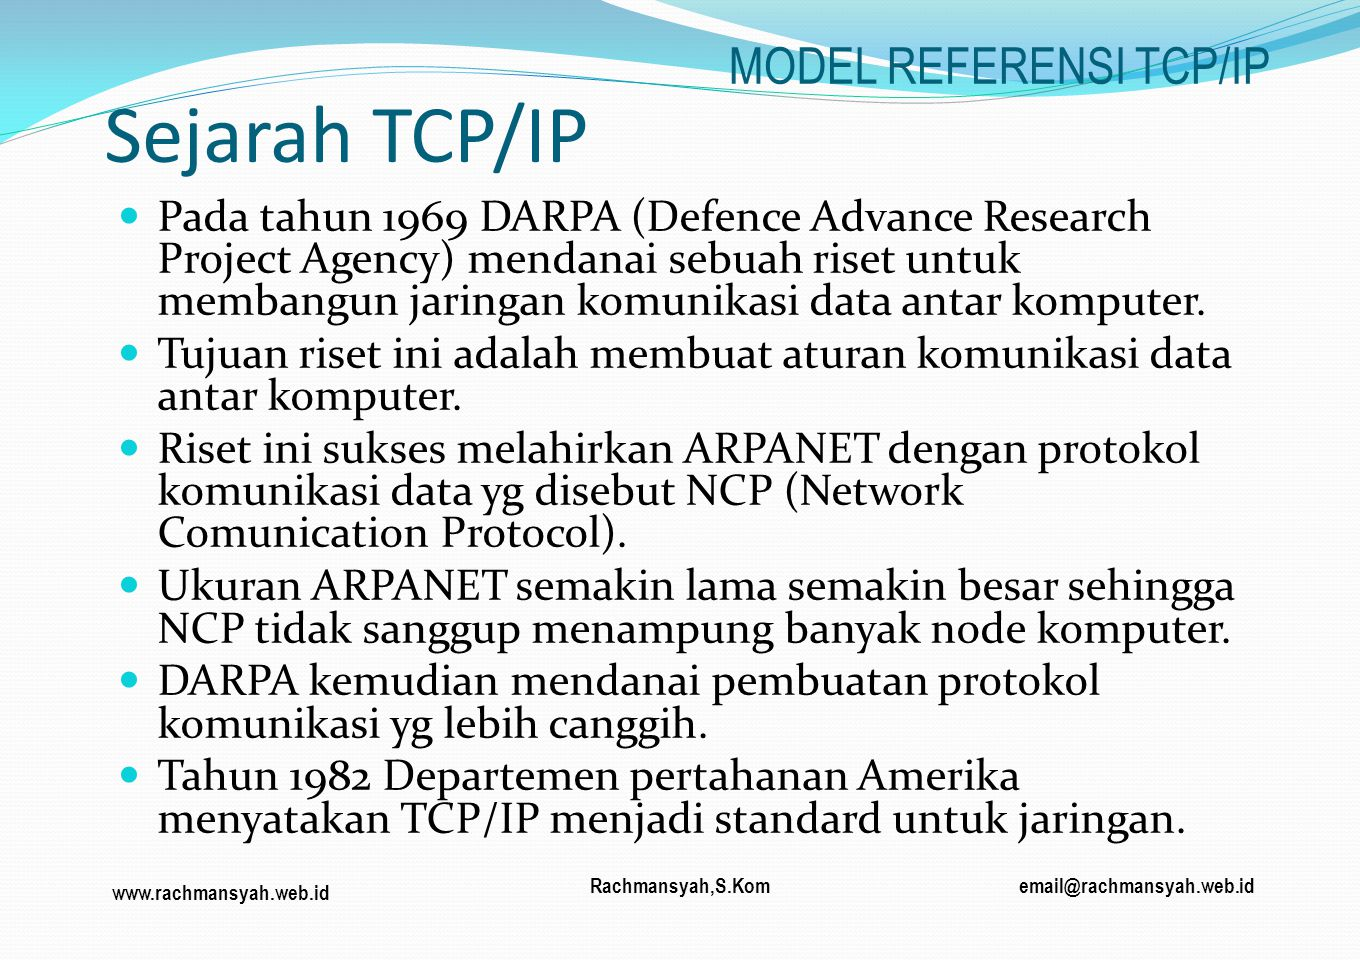 Sejarah TCP/IP MODEL REFERENSI TCP/IP